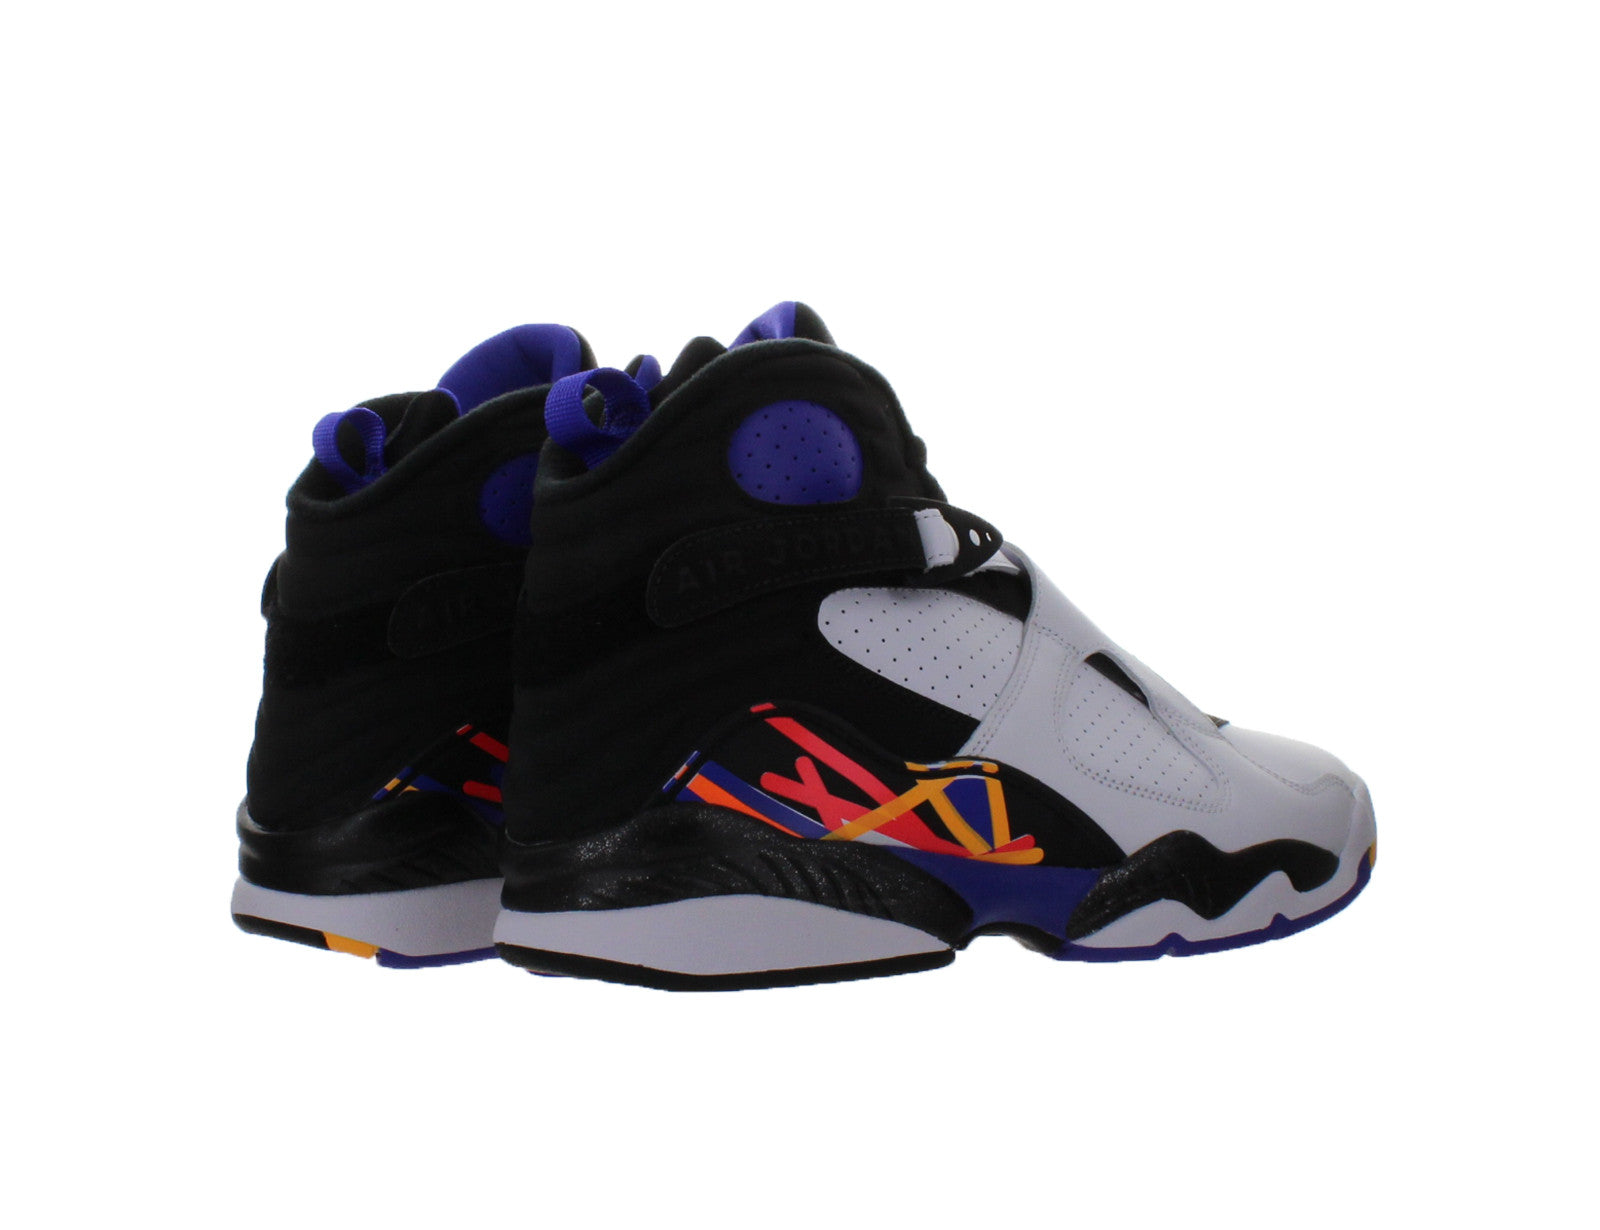 c929f88c55ba0f Mens Air Jordan Retro 8 VIII Three Peat 3-Peat White .